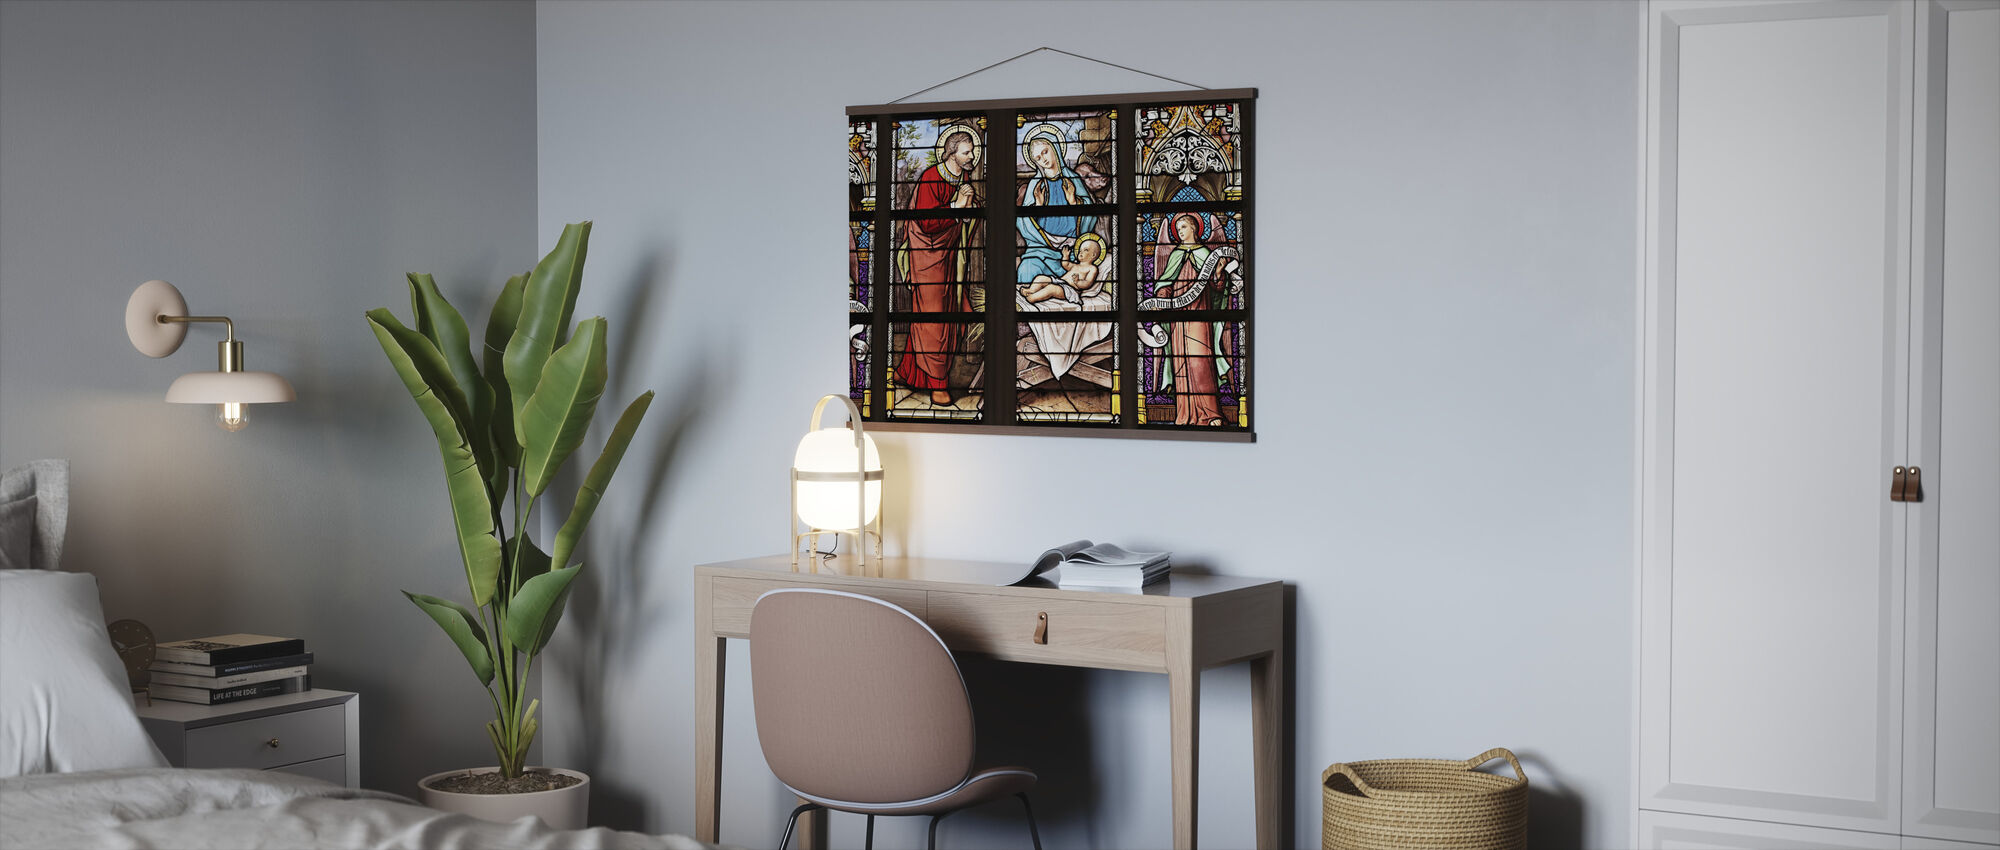 Church Window - Poster - Office